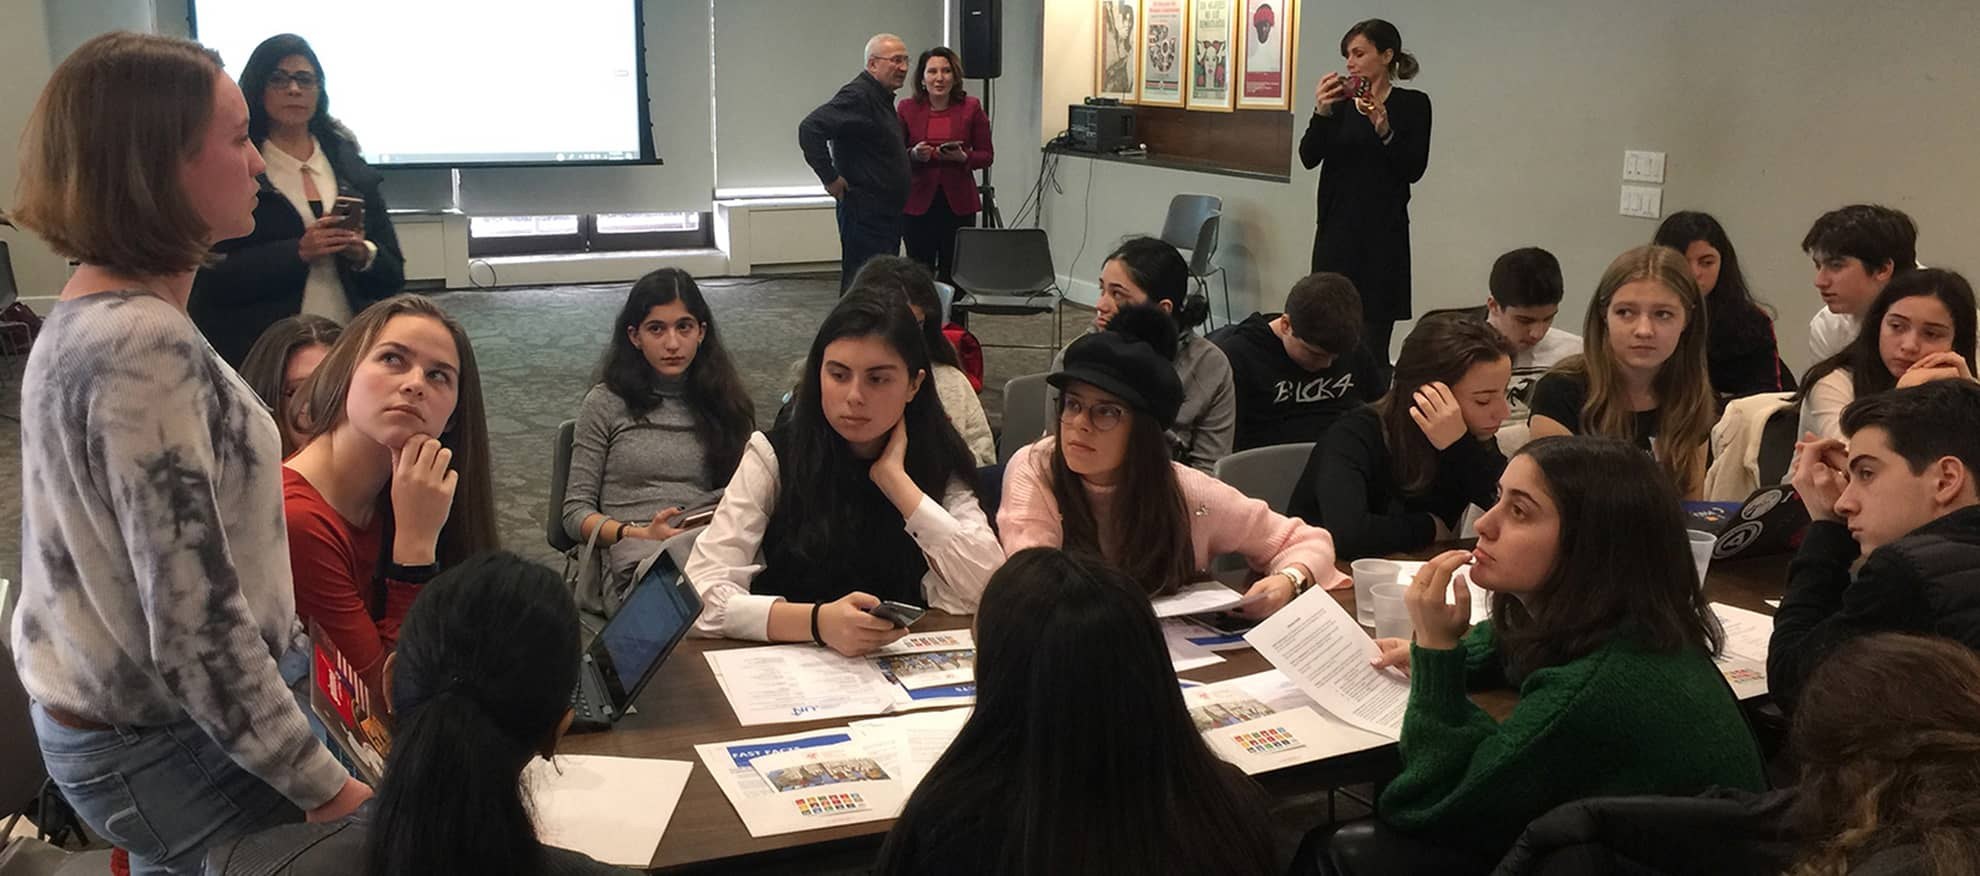 Lilian Oxley (standing) helps guide discussion among students from Mexico, the Republic of Georgia, New York and New Jersey on the subtheme: Science-based facts and predictions related to climate change. In the background are teachers from these schools, who are there to observe but not intervene.